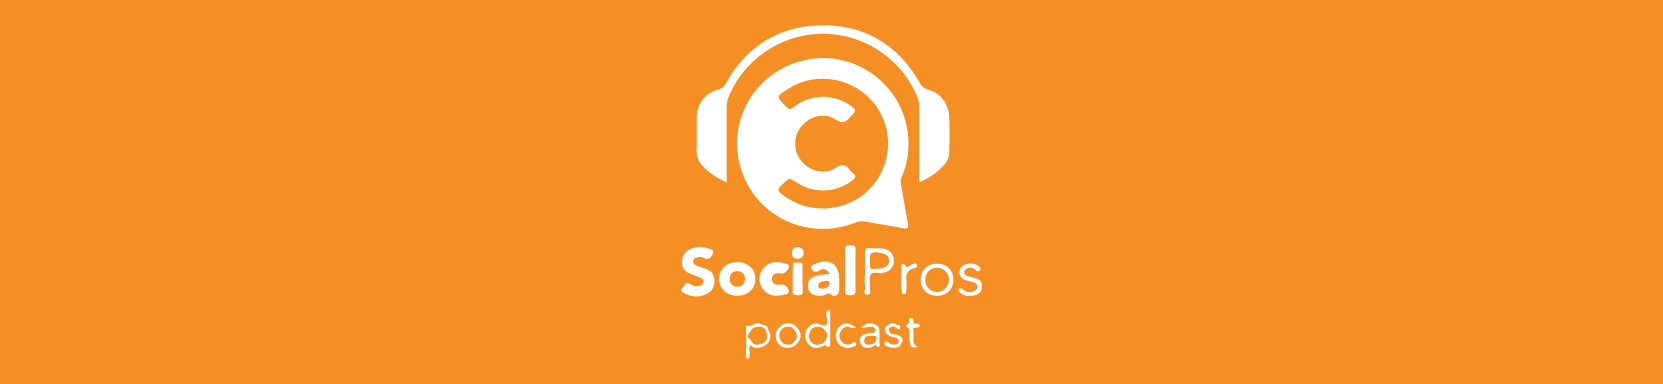 Social Pros Social media marketing Podcast by Convice and Convert